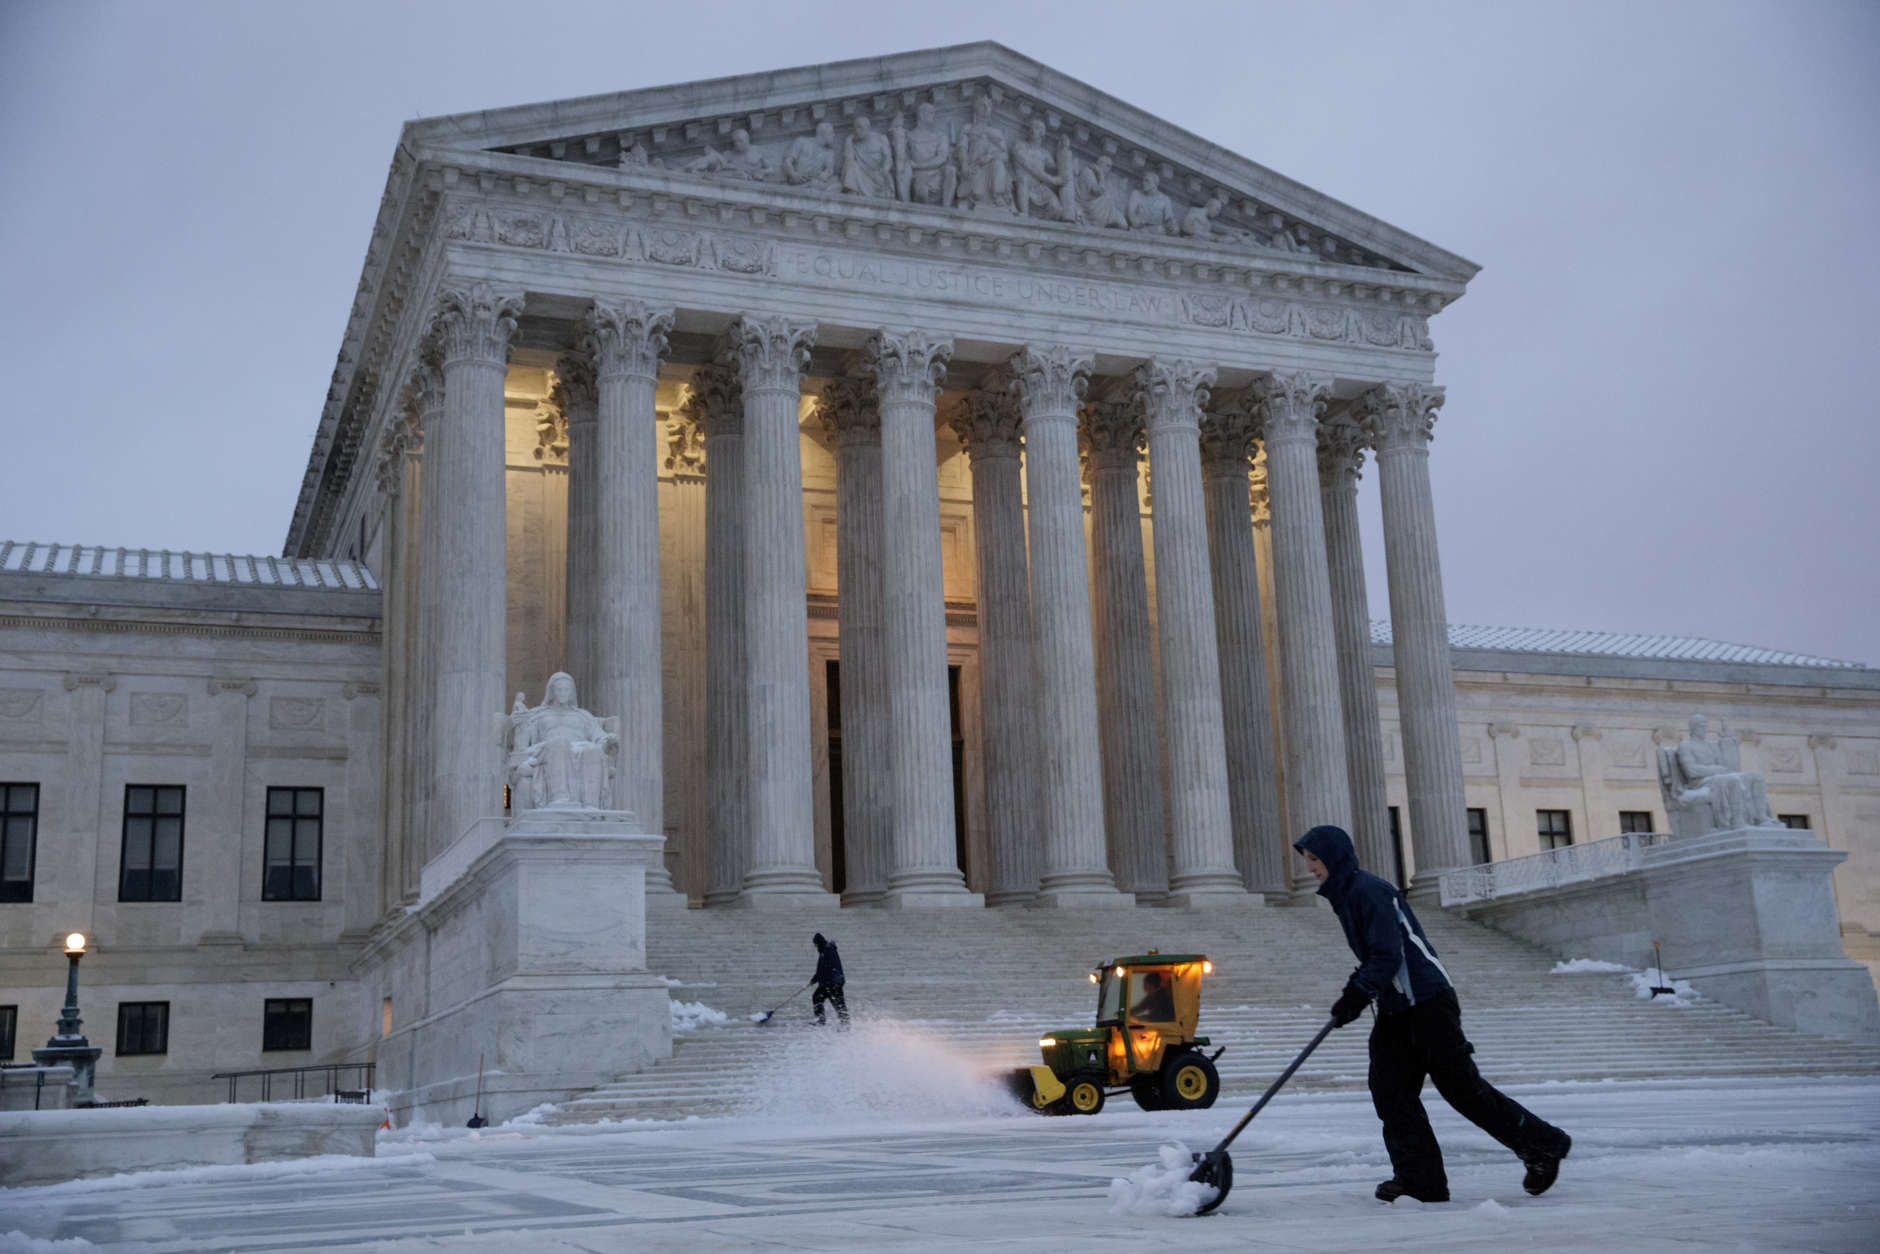 Workmen clear snow in front of the Supreme Court on Capitol Hill in Washington, Tuesday, March, 14, 2017. A late-season storm is dumping a messy mix of snow, sleet and rain on the mid-Atlantic, complicating travel, knocking out power and closing schools and government offices around the region. (AP Photo/J. Scott Applewhite)